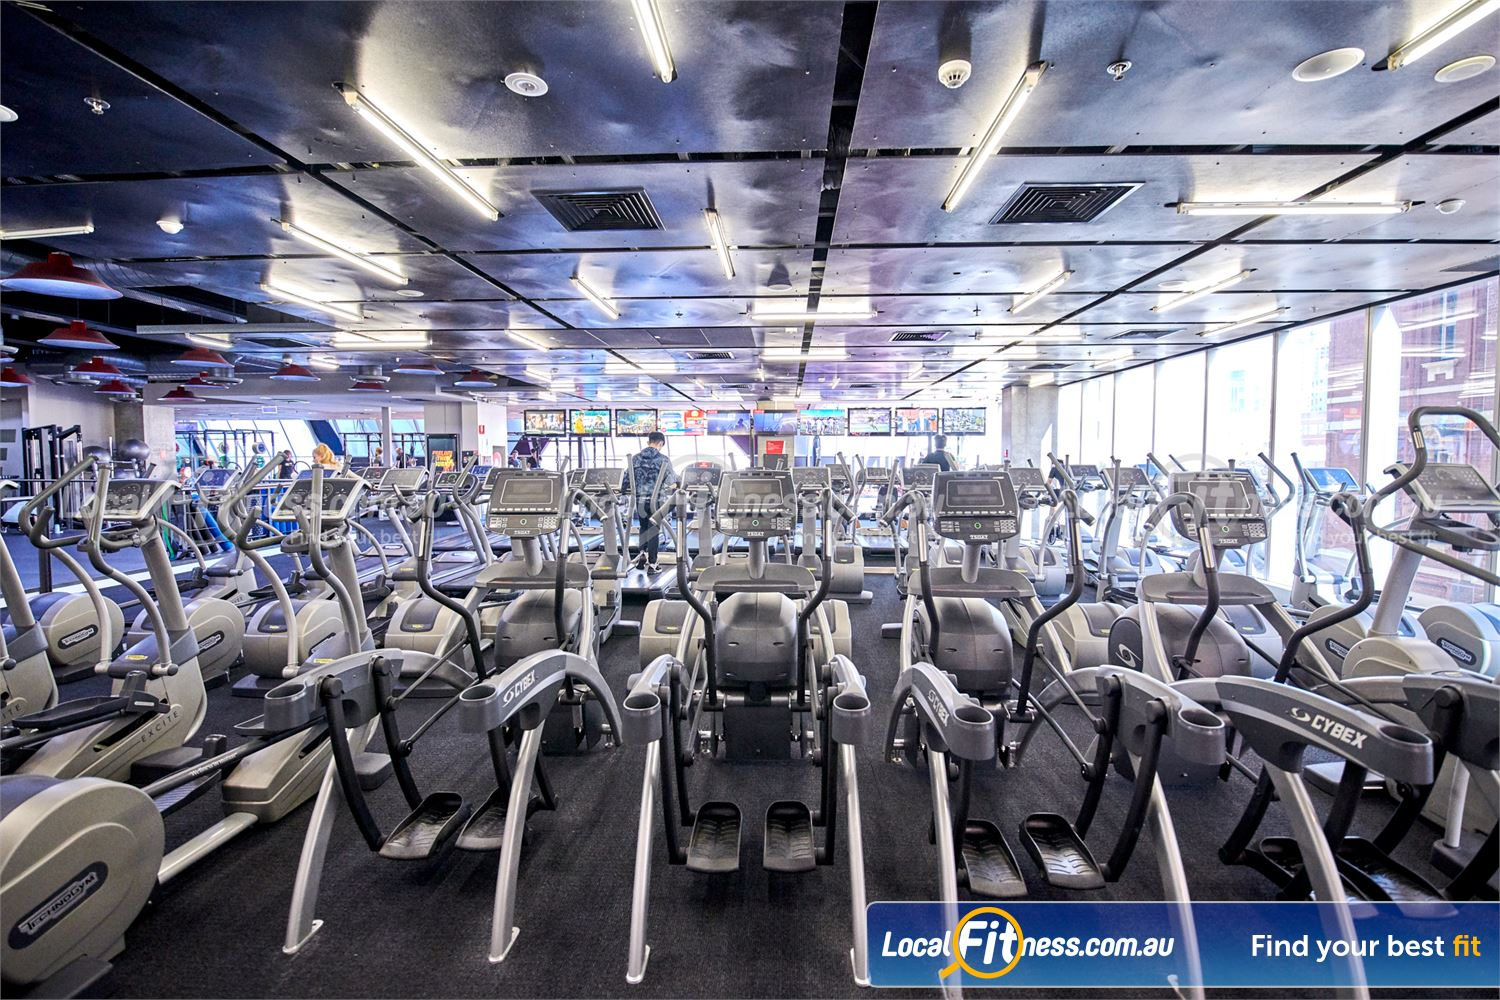 Fitness First QV Platinum Near East Melbourne Rows of state of the art treadmills and cross-trainers.